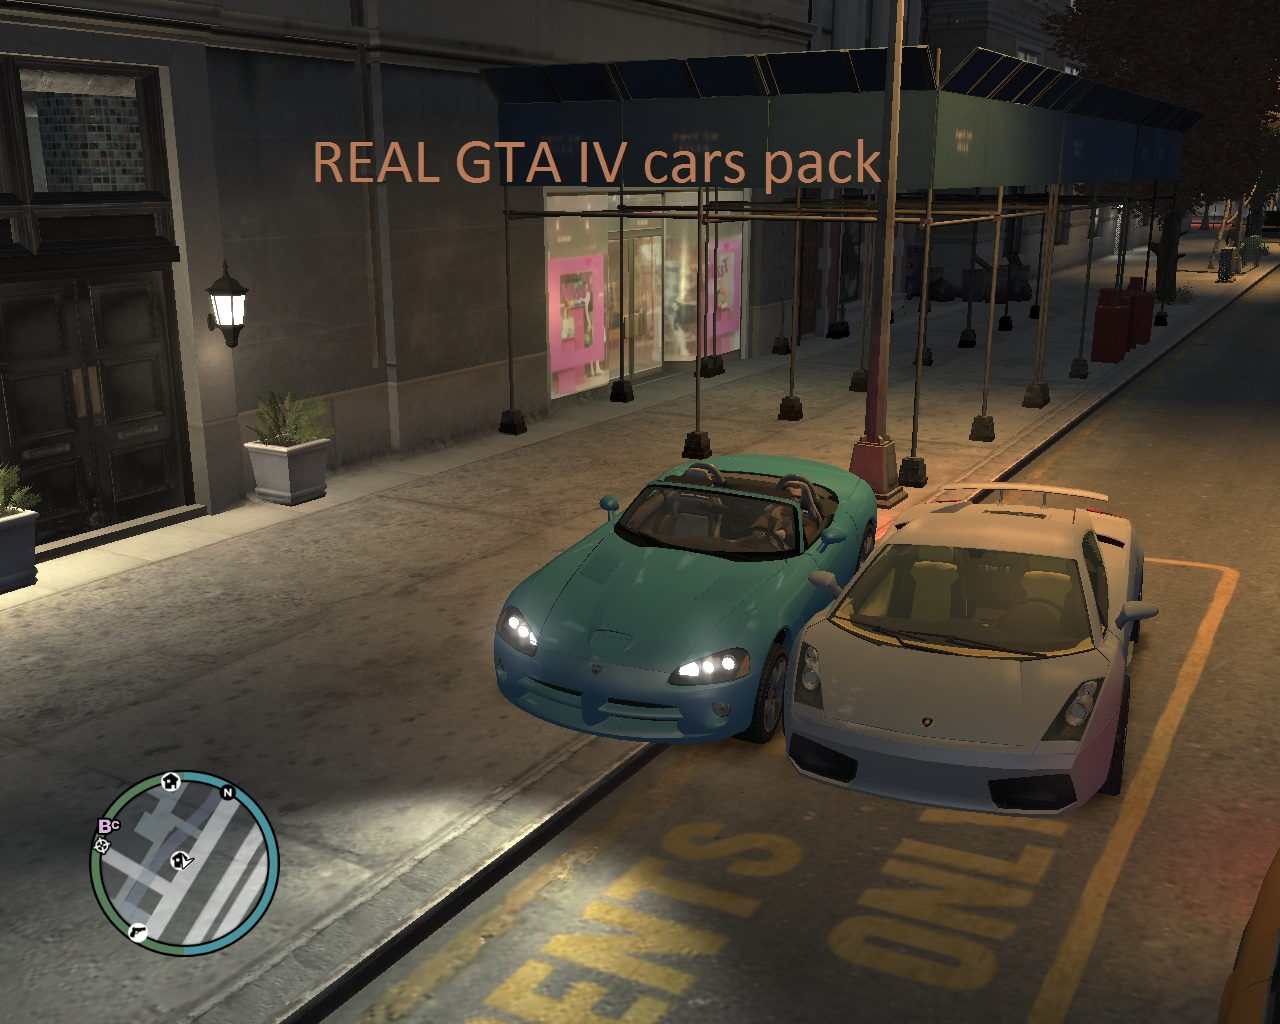 Download Car Wallpaper Pack For Pc The Real Gta Iv Cars Pack Beta 1 File Mod Db